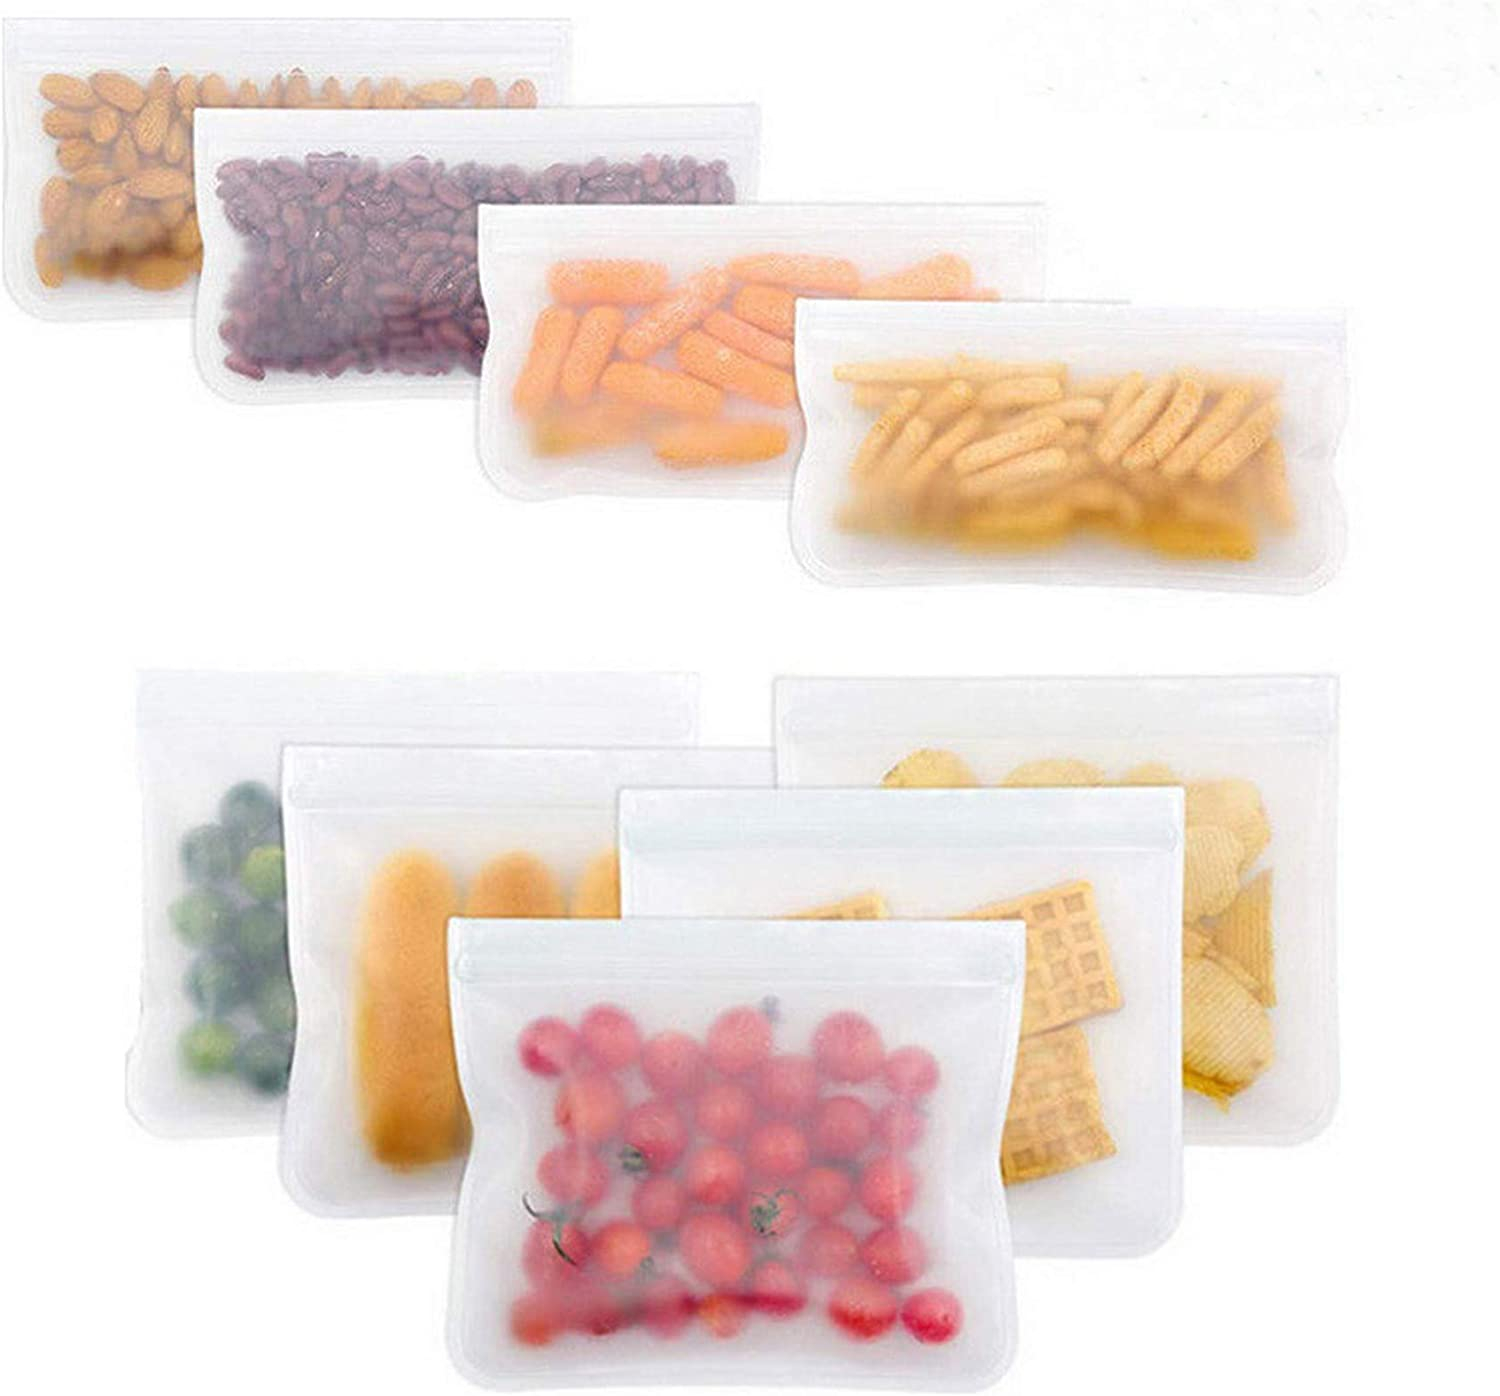 Reusable Storage Bags,5 Pic large size 11.2 x 10.2 inch BPA Free PEVA Resuable Freezer Bags,Reusable Gallon Bags, Reusable Sandwish Bags, Silicone Food Bags